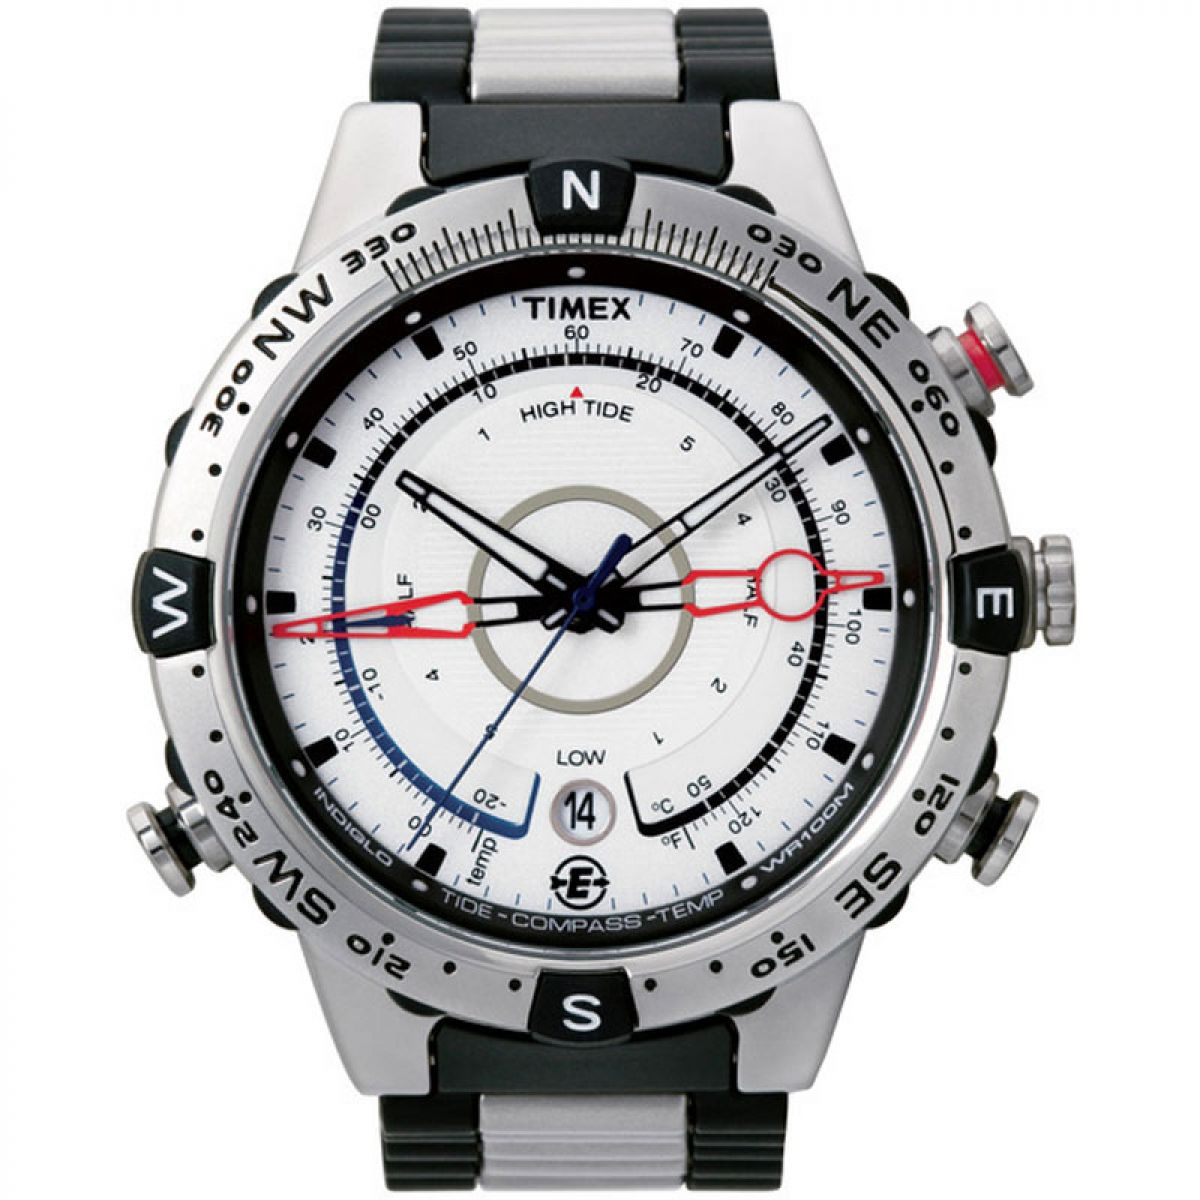 gents timex expedition e tide temp compass watch t45781 rh watchshop com Timex Indiglo Alarm Watch Manual Timex Expedition Watches Men